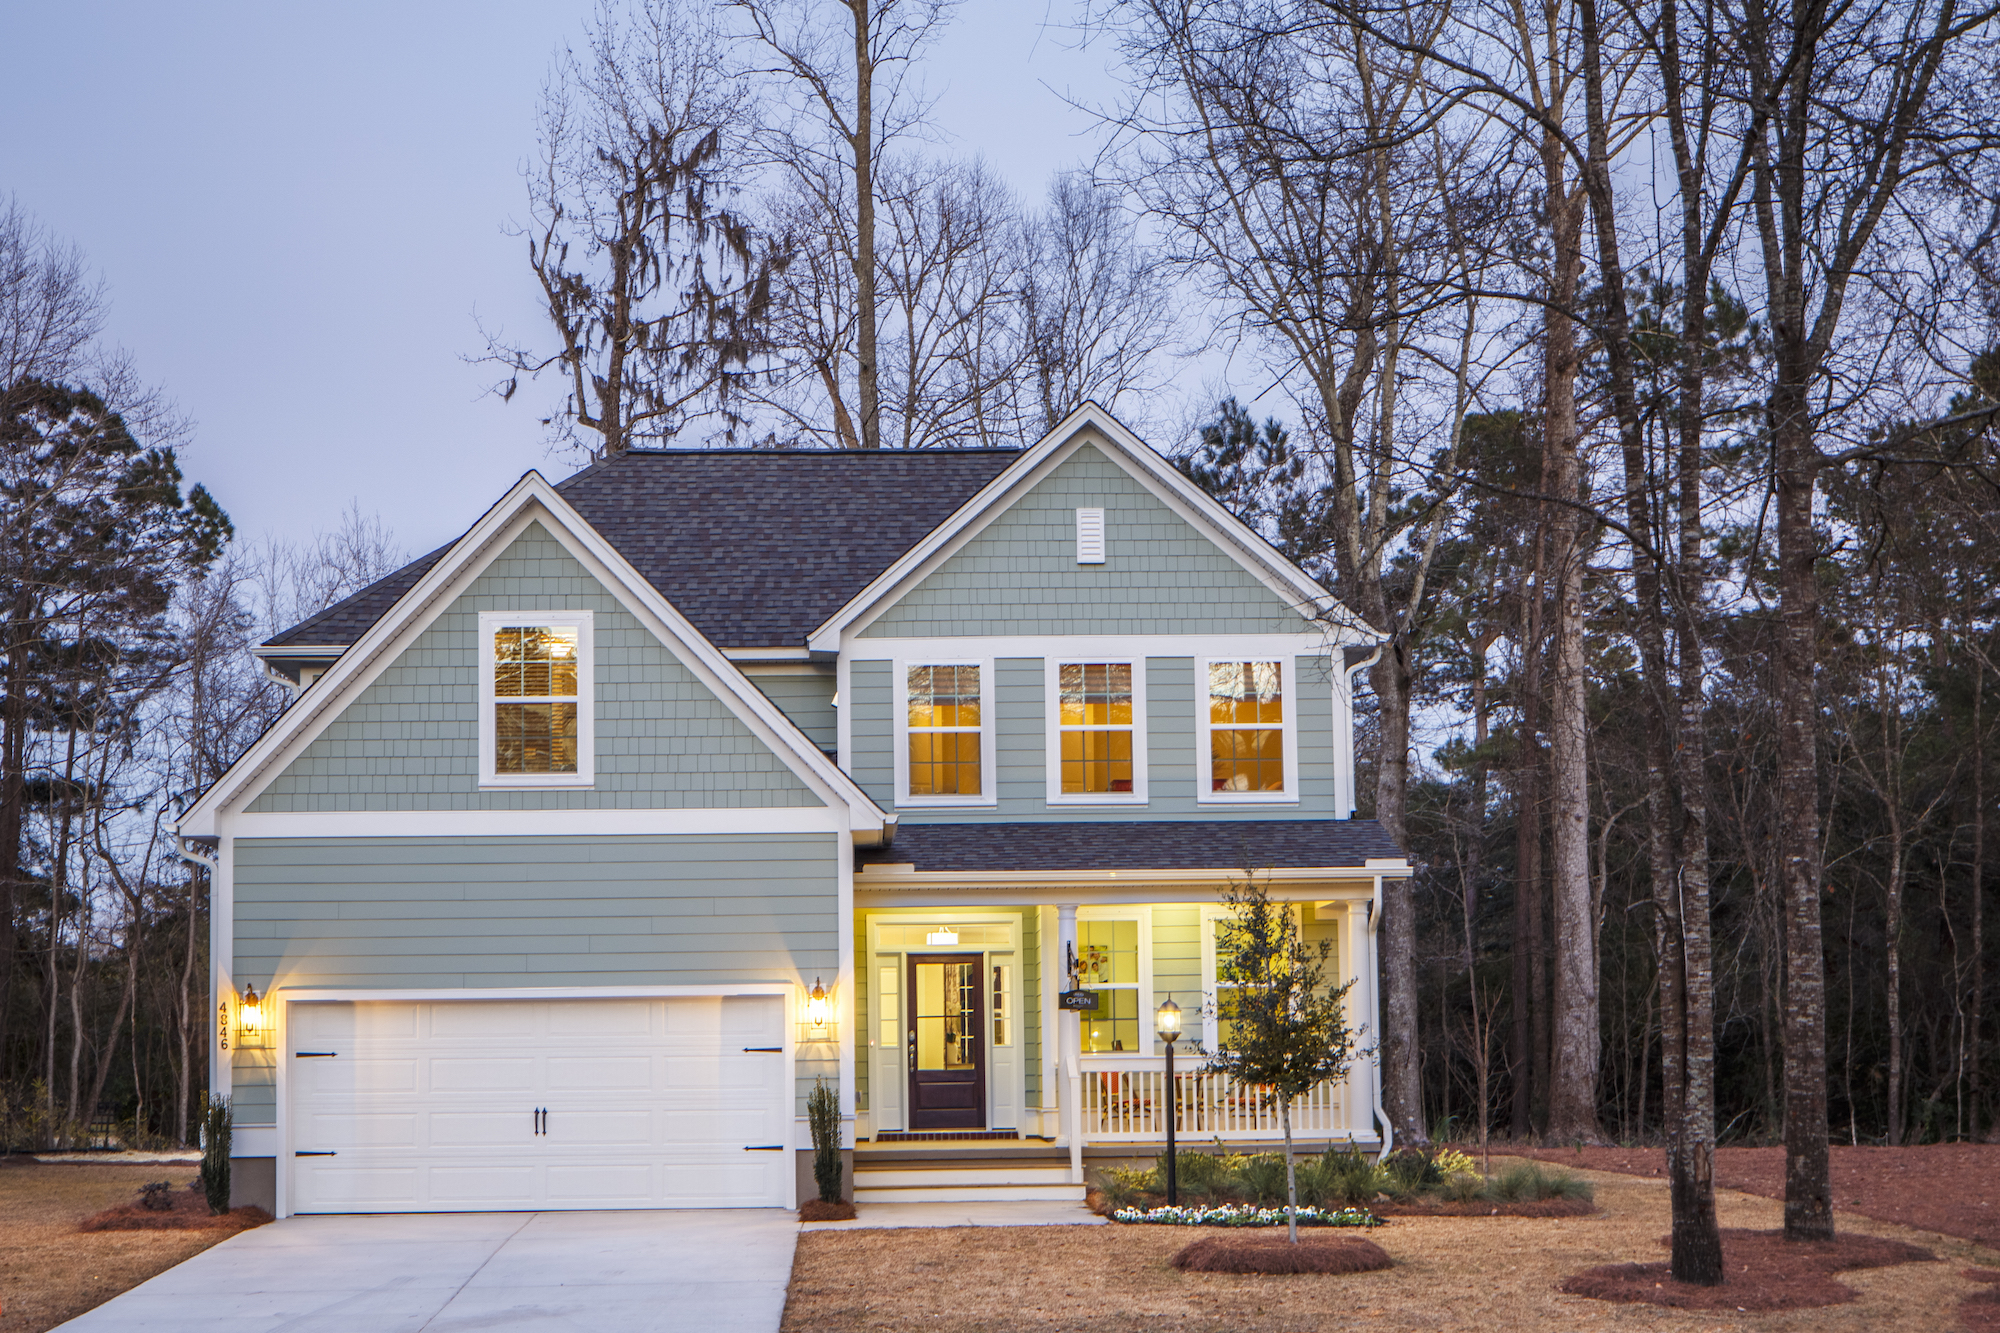 The cottages at stono ferry charleston 39 s best kept real for Cottage style homes greenville sc